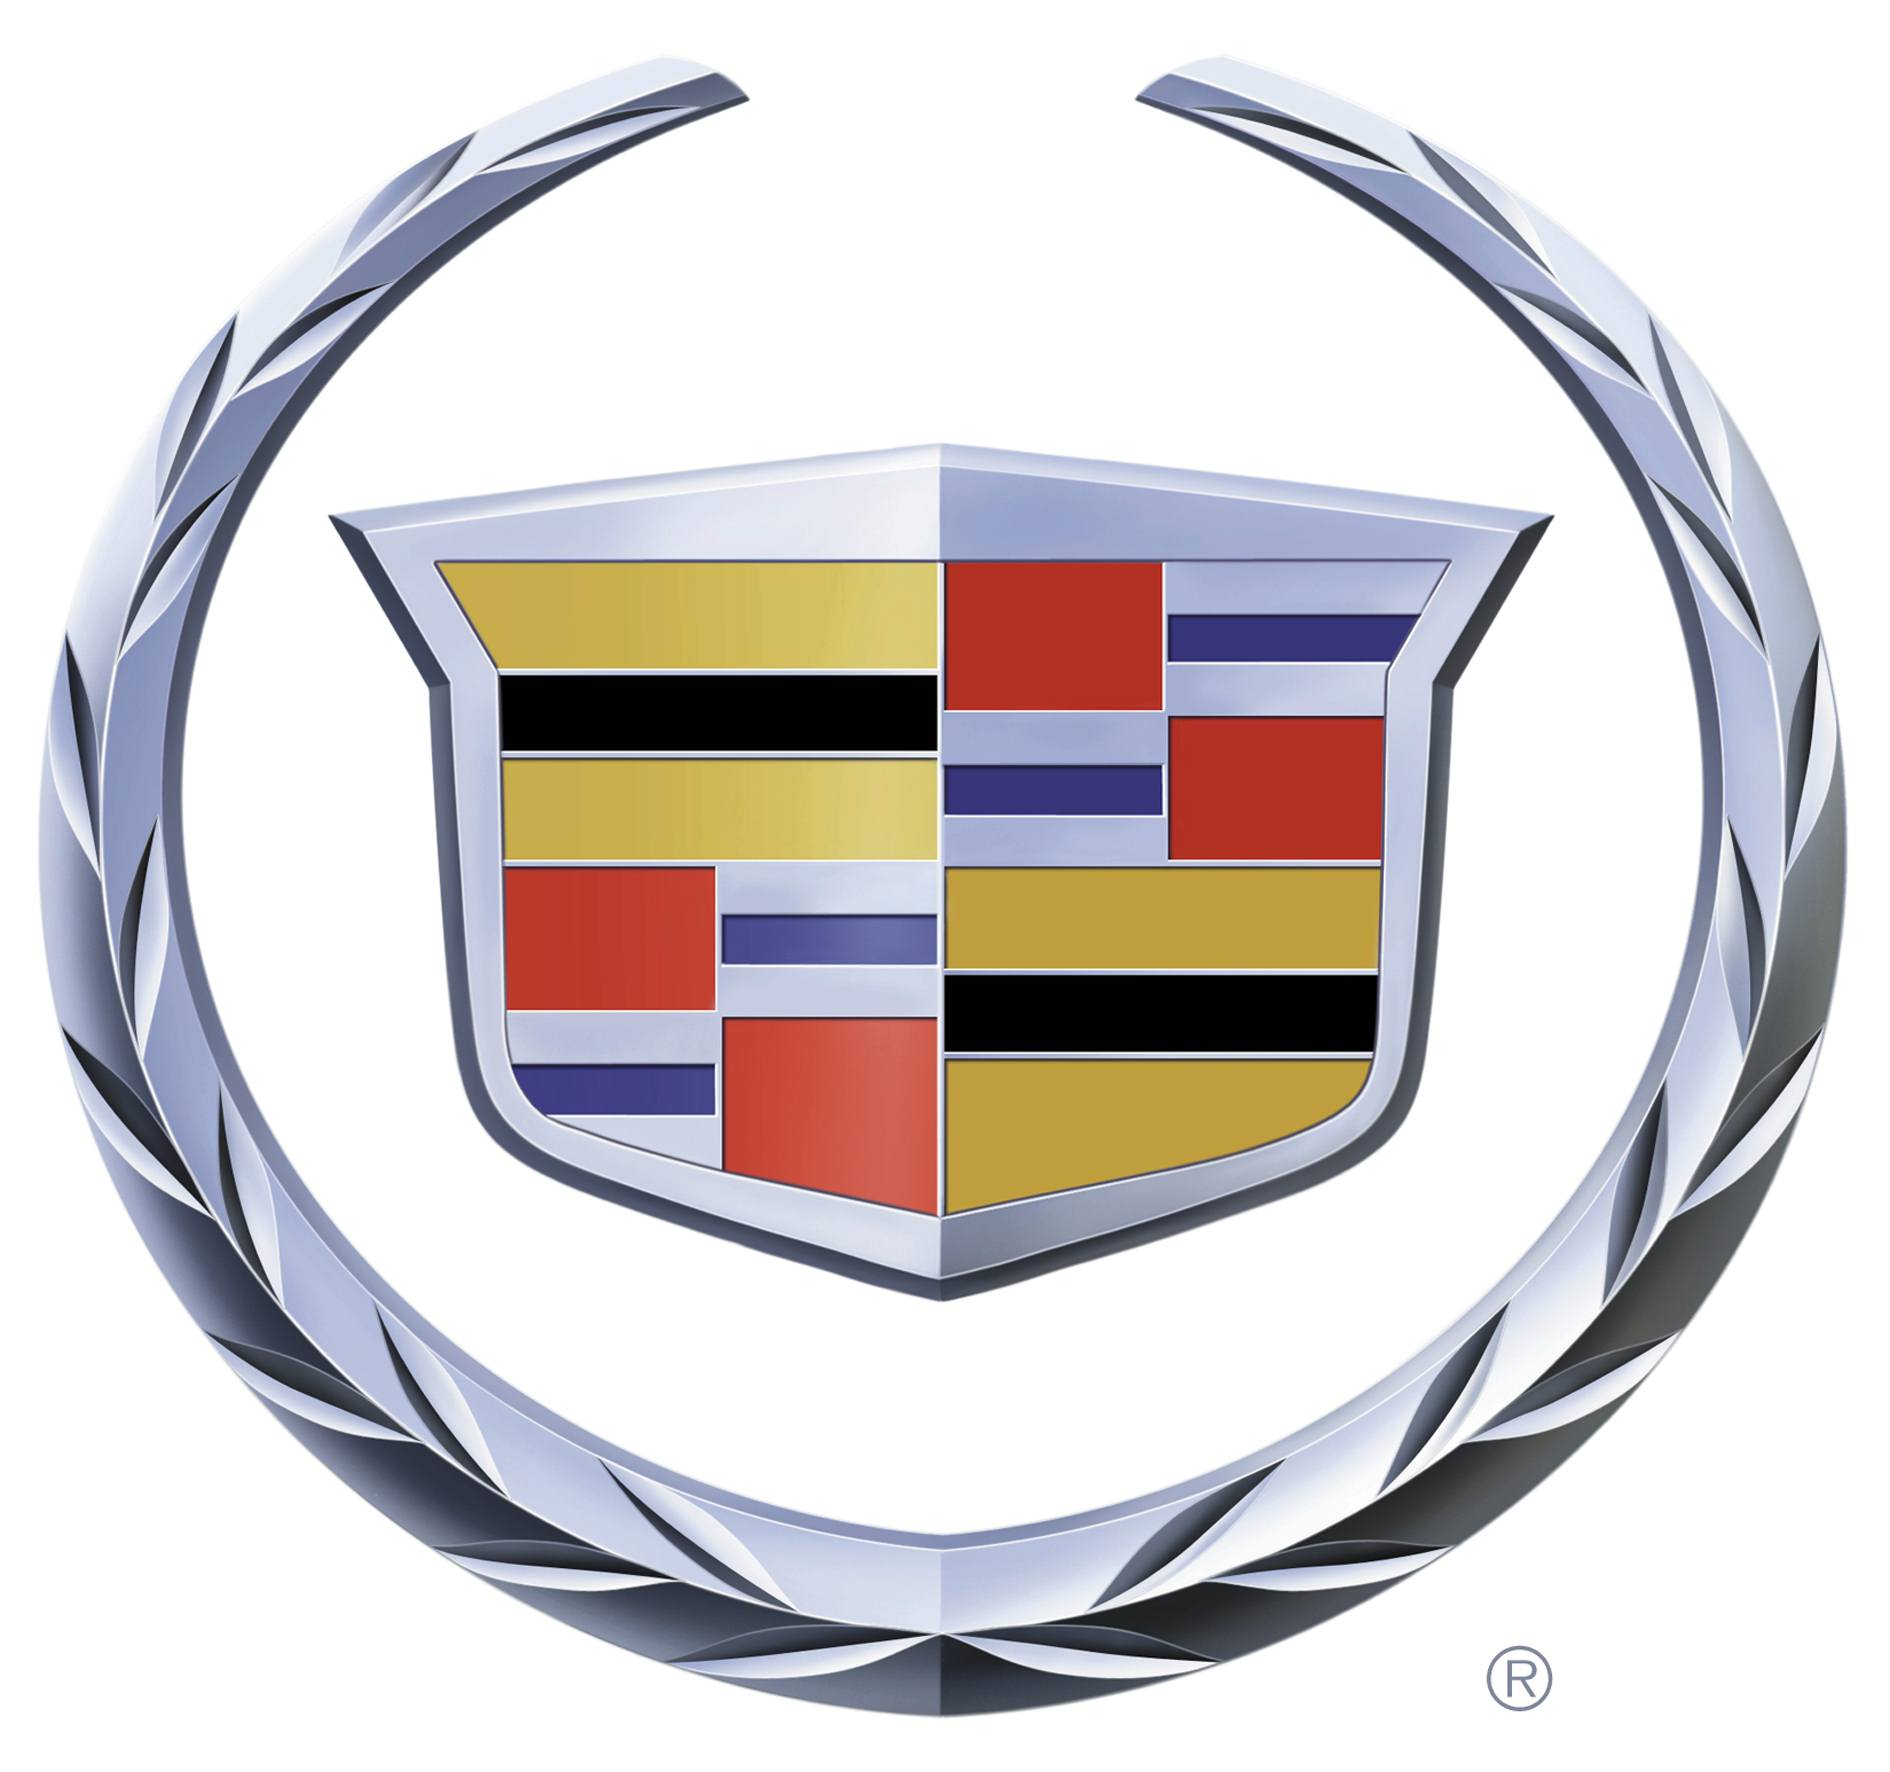 cadillac logo black and white. metadoes the cadillac logo look sort of like maryland flag to any you black and white